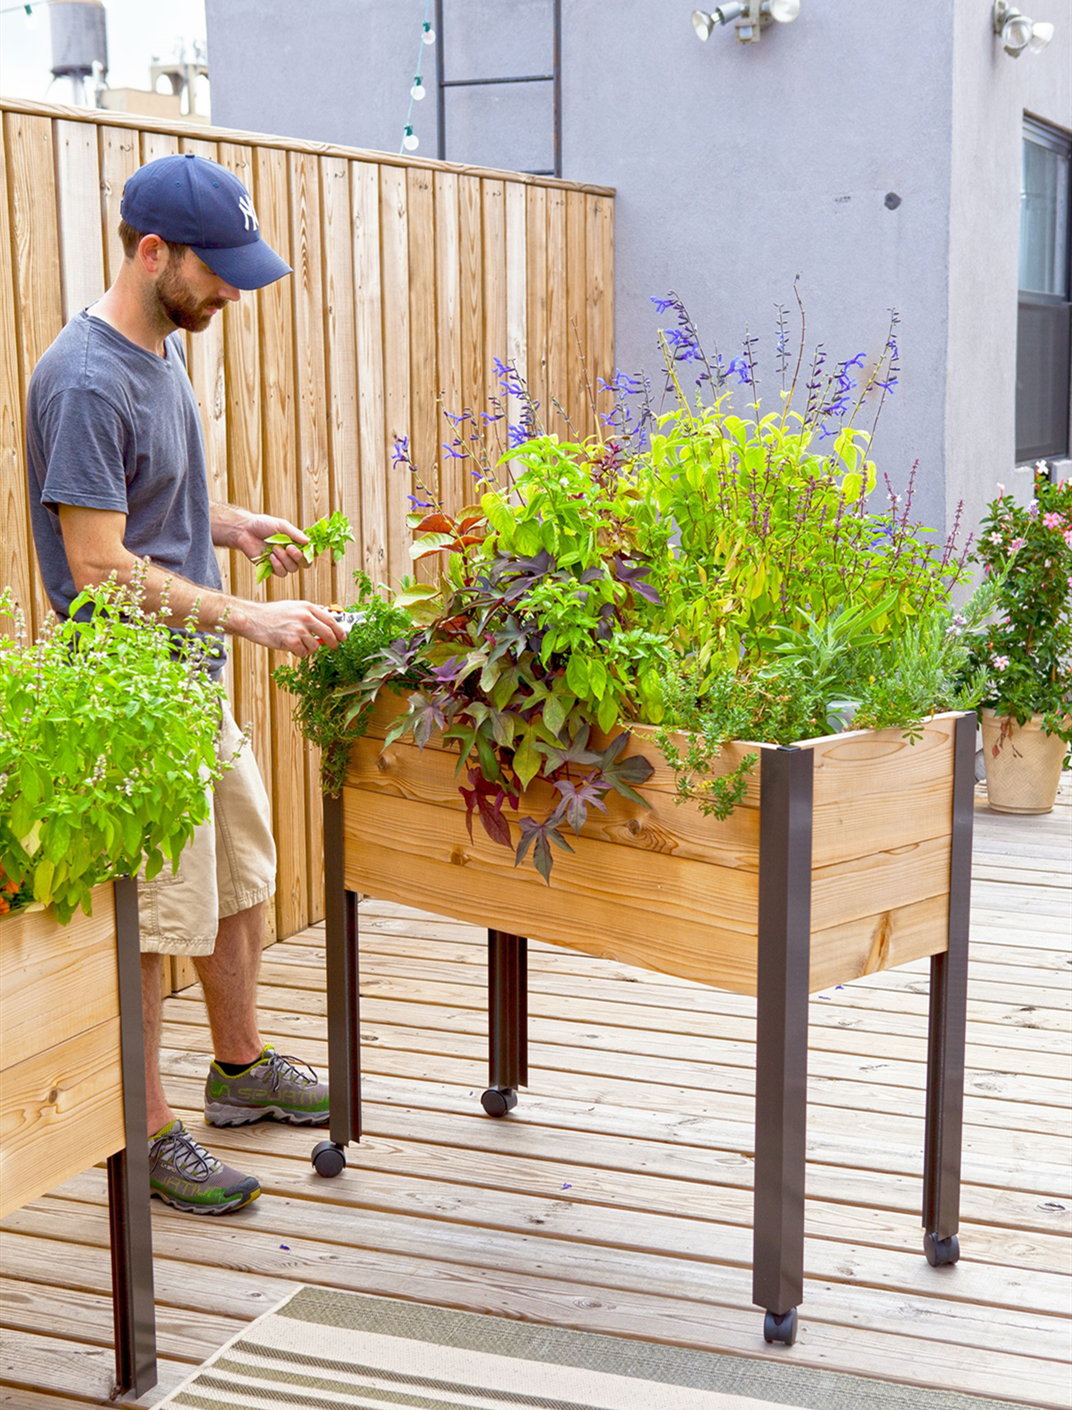 Benefits of Using the Standing Raised Bed Planter